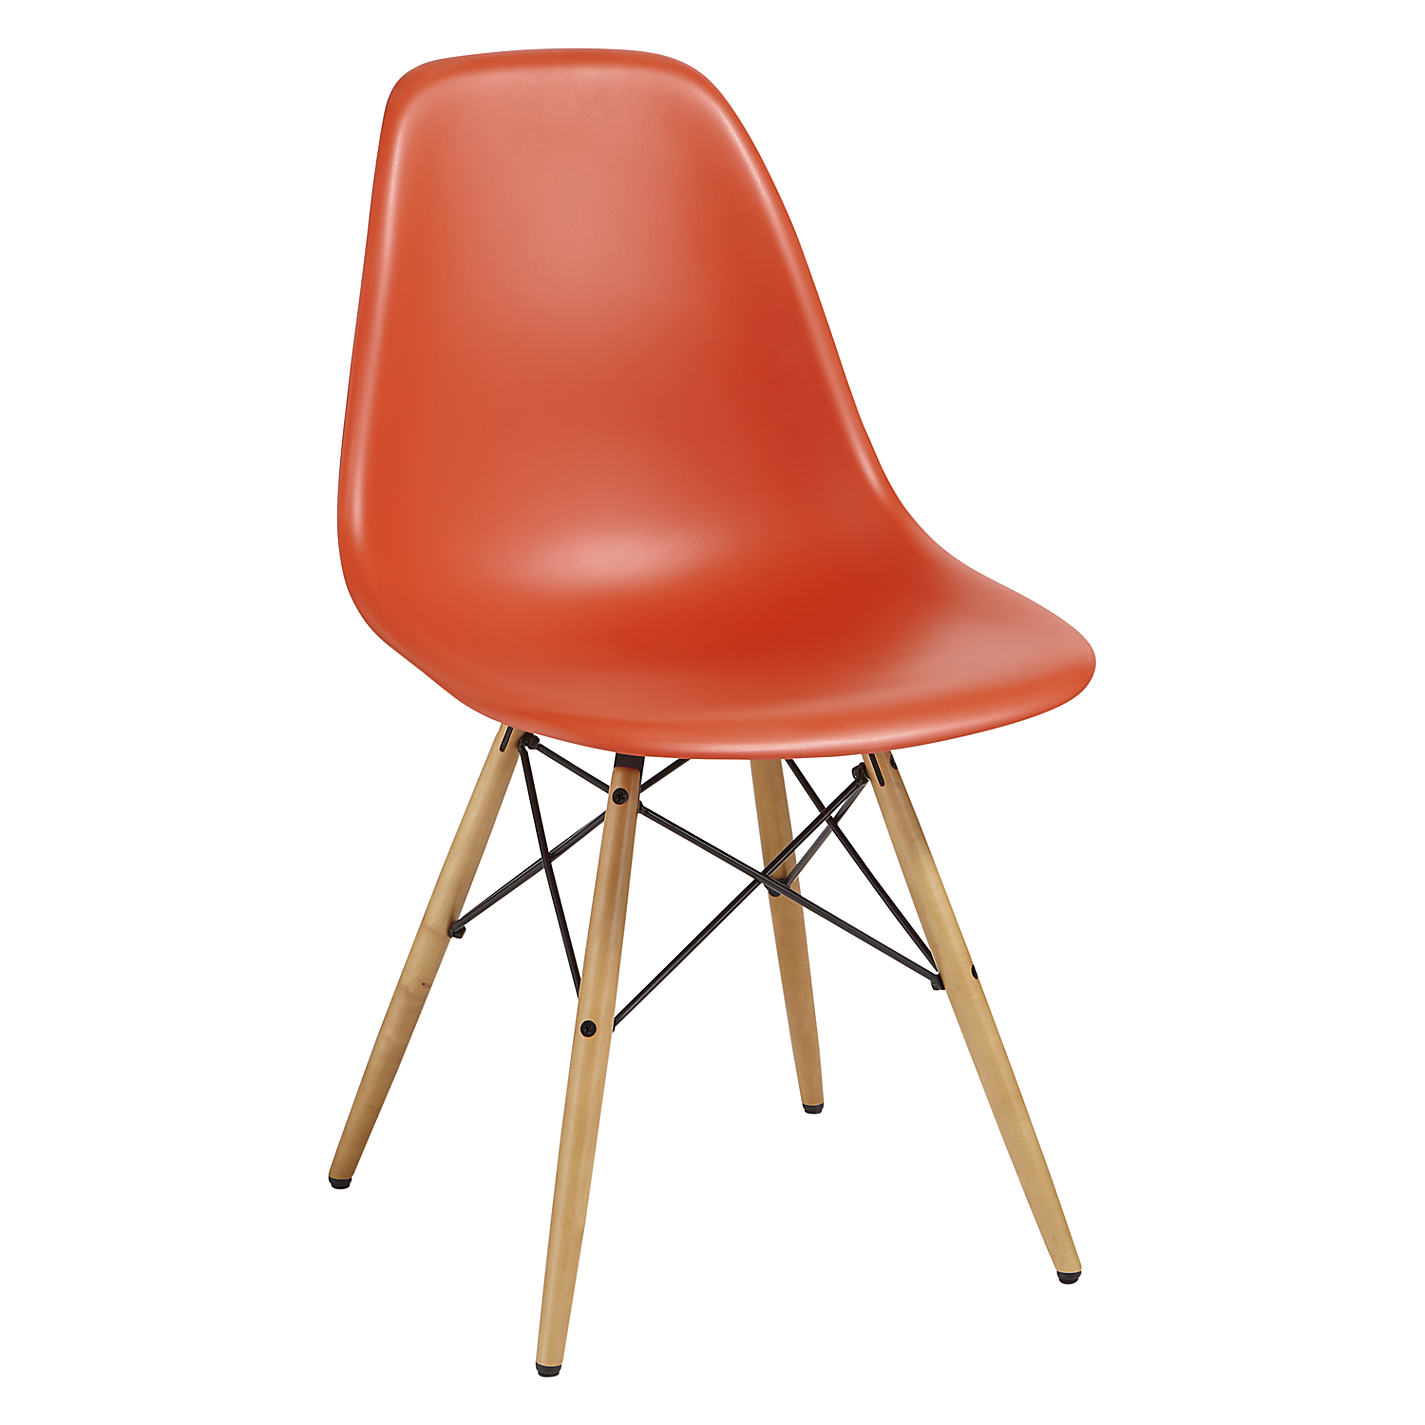 buy vitra eames dsw cm side chair  john lewis - buy vitra eames dsw cm side chair online at johnlewiscom